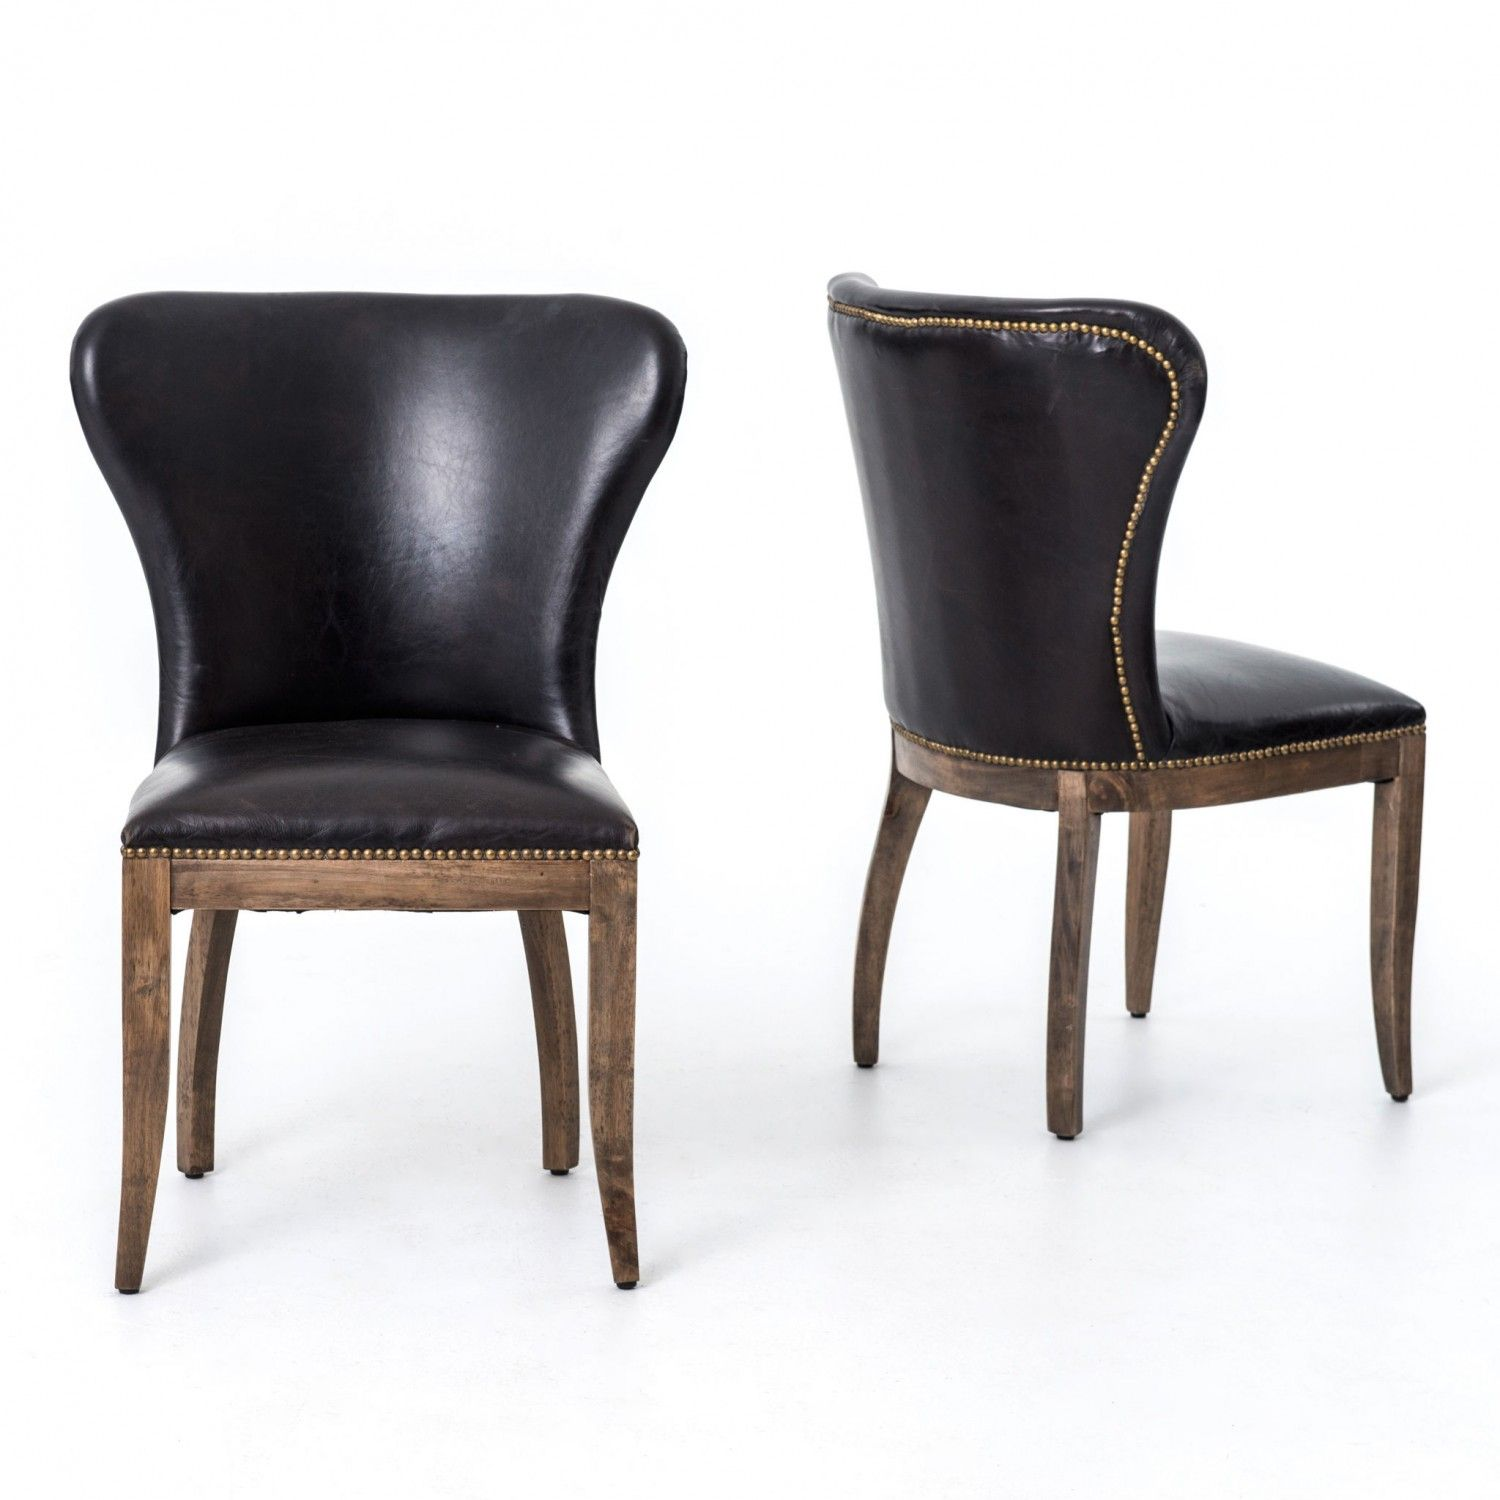 leather dining chairs modern. RICHMOND DINING CHAIR - MORE OPTIONS AVAILABLE | Industrial Home. Black Leather Dining ChairsModern Chairs Modern